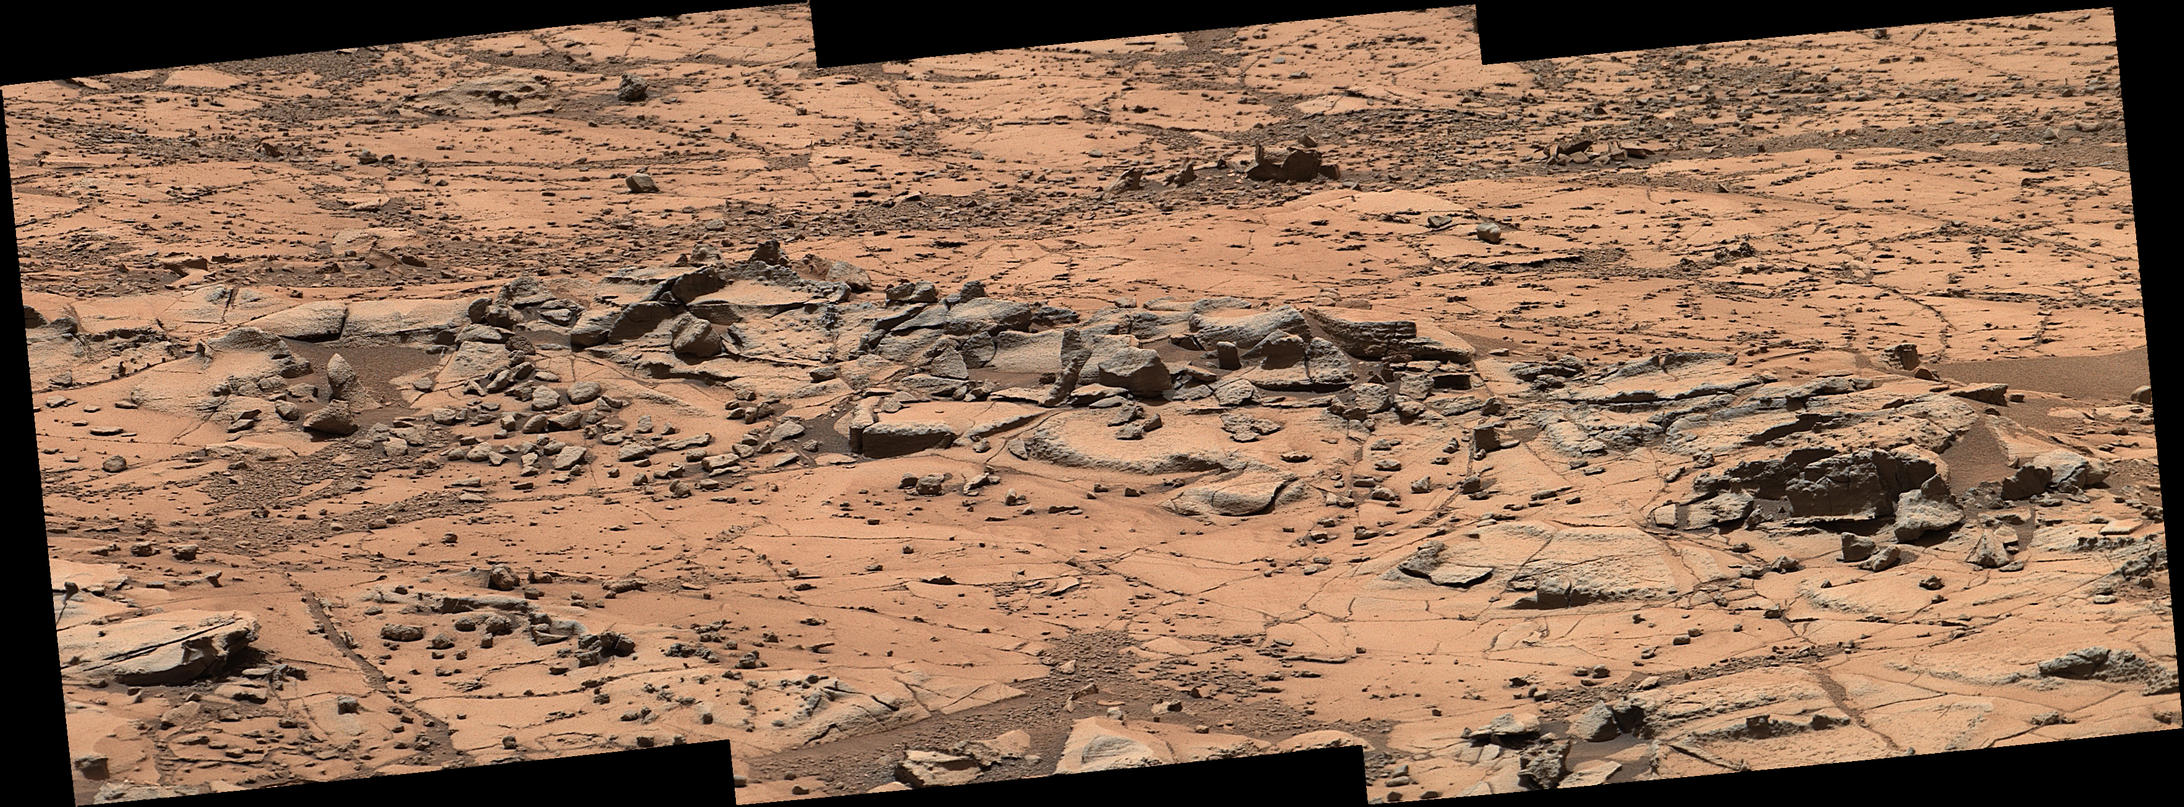 Erosion Resistance at 'Pink Cliffs' at Base of Martian Mount Sharp